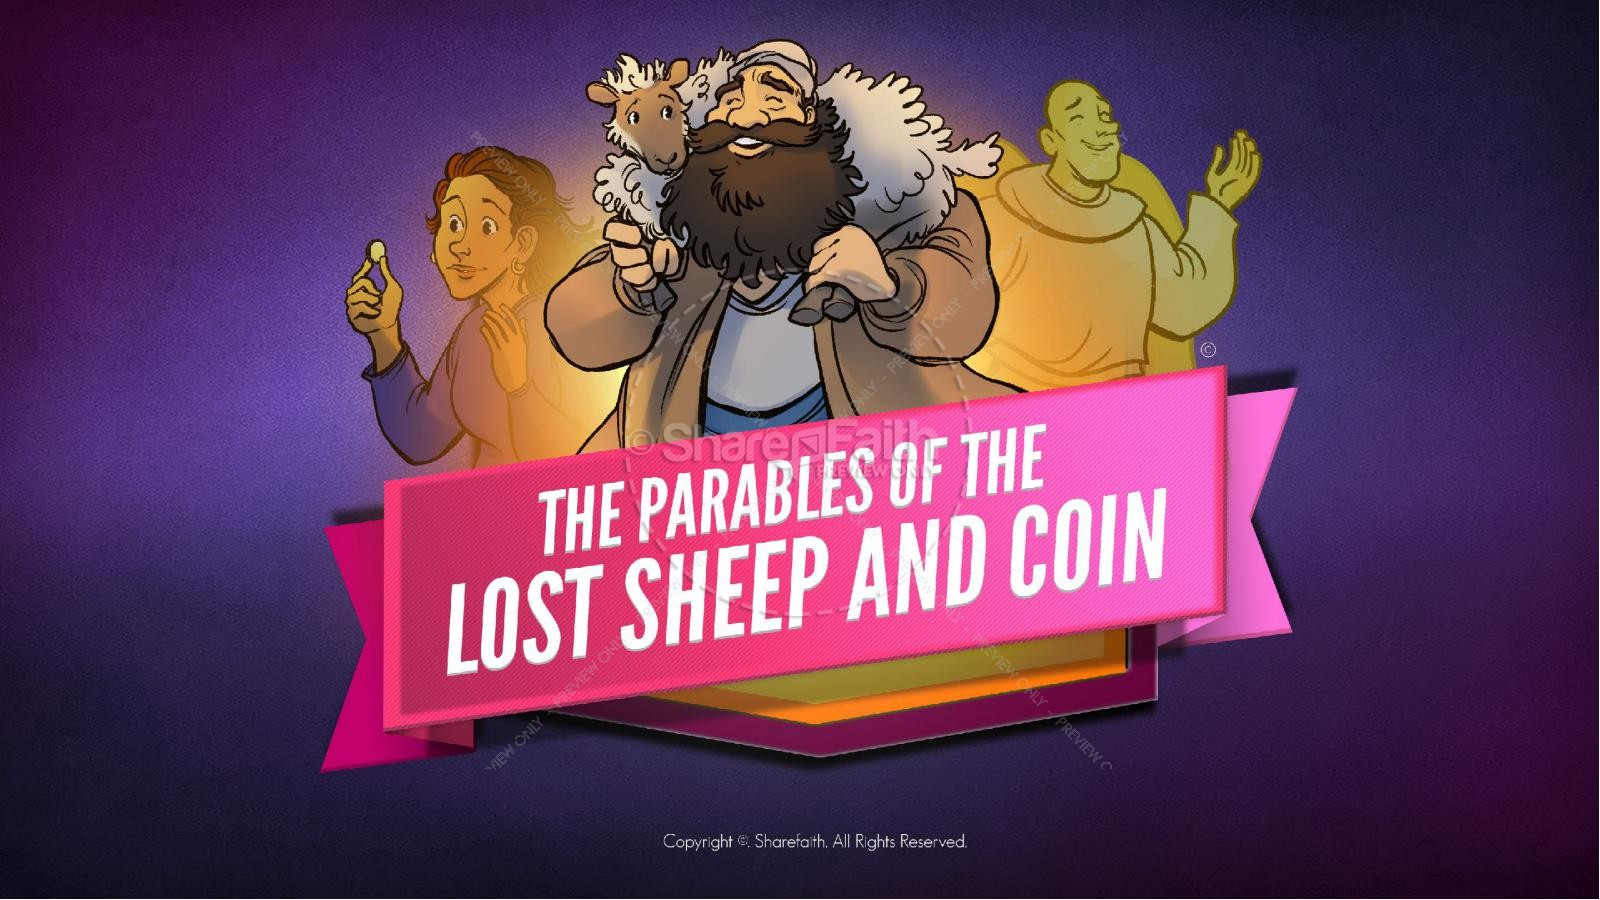 Luke 15 The Parables of the Lost Sheep and Coin Kids Bible Story | slide 1